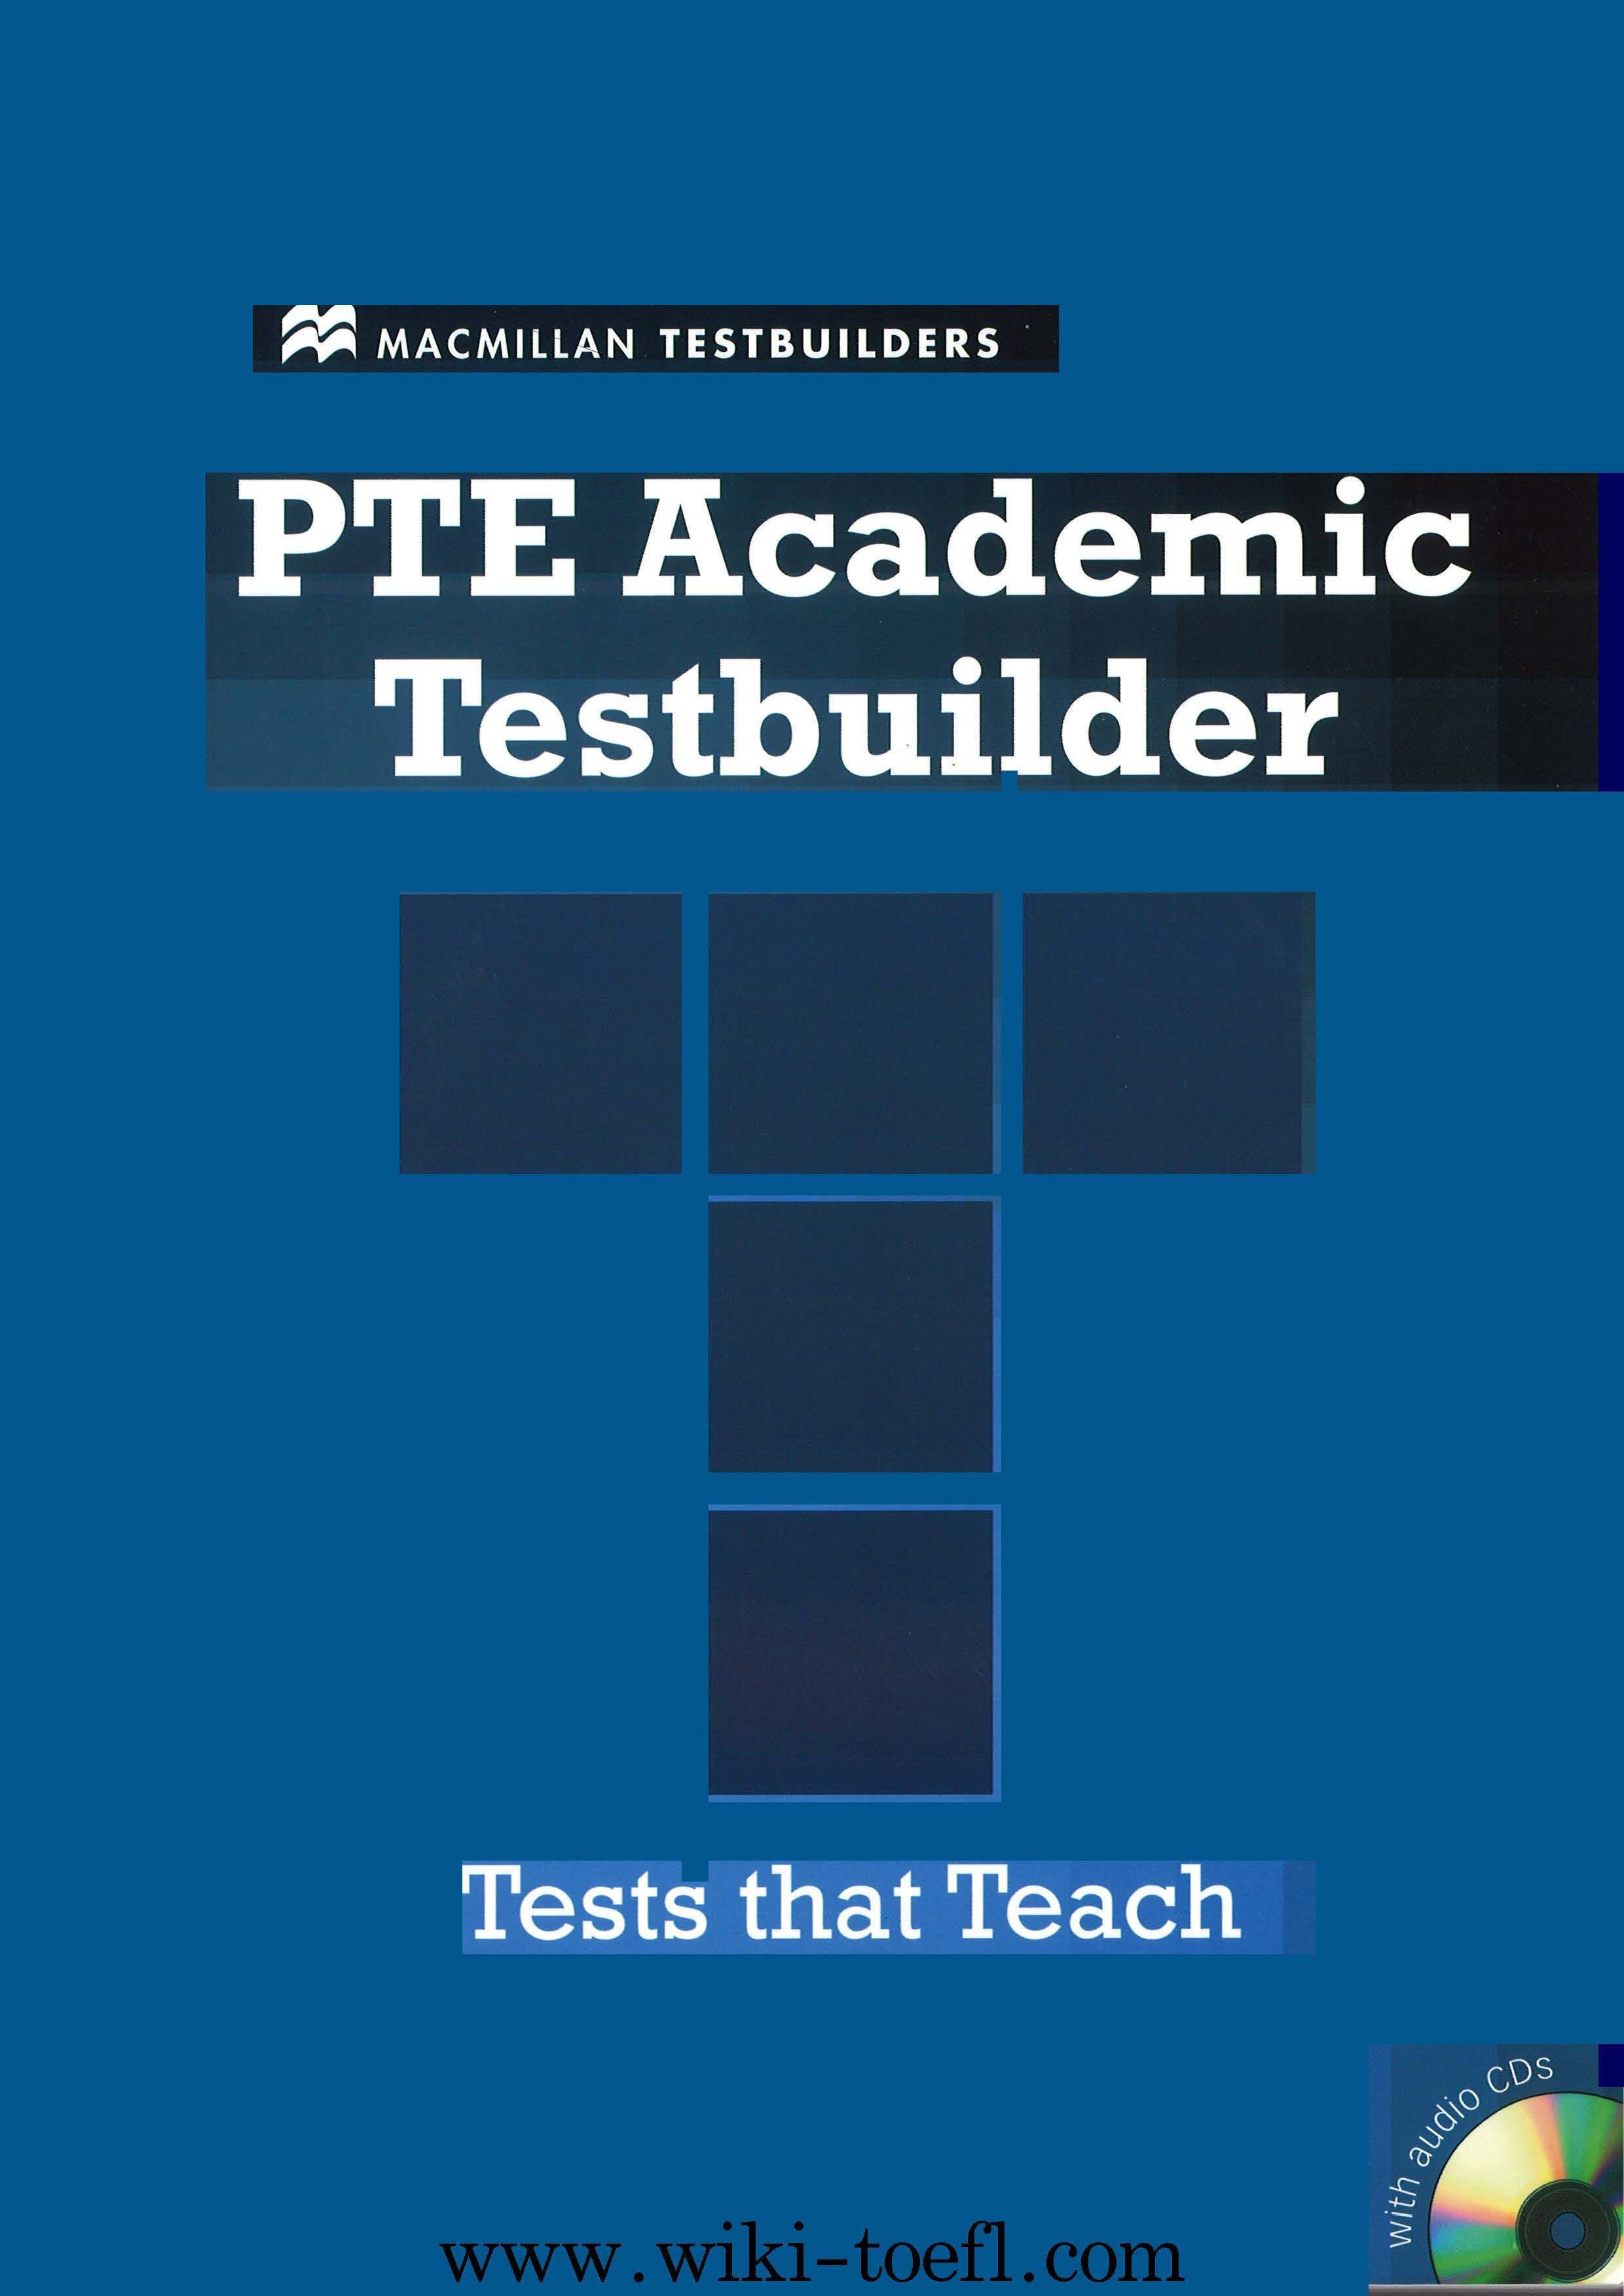 Pin by WIKI TOEFL on Pearson Test of English   Pinterest   English ...